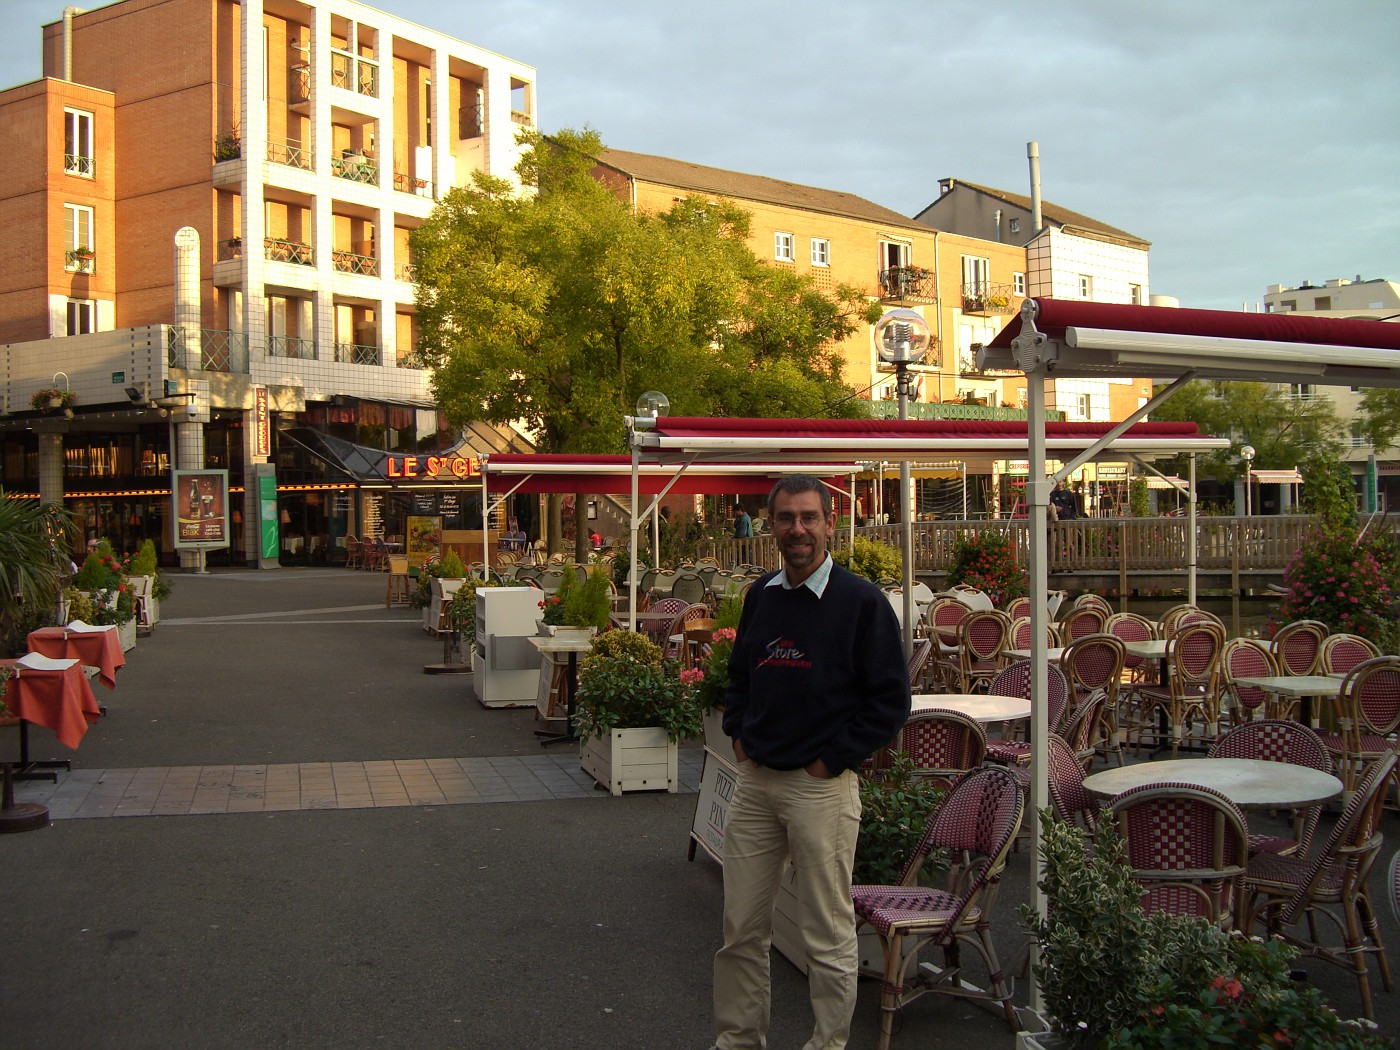 Andreas in Guyancourt